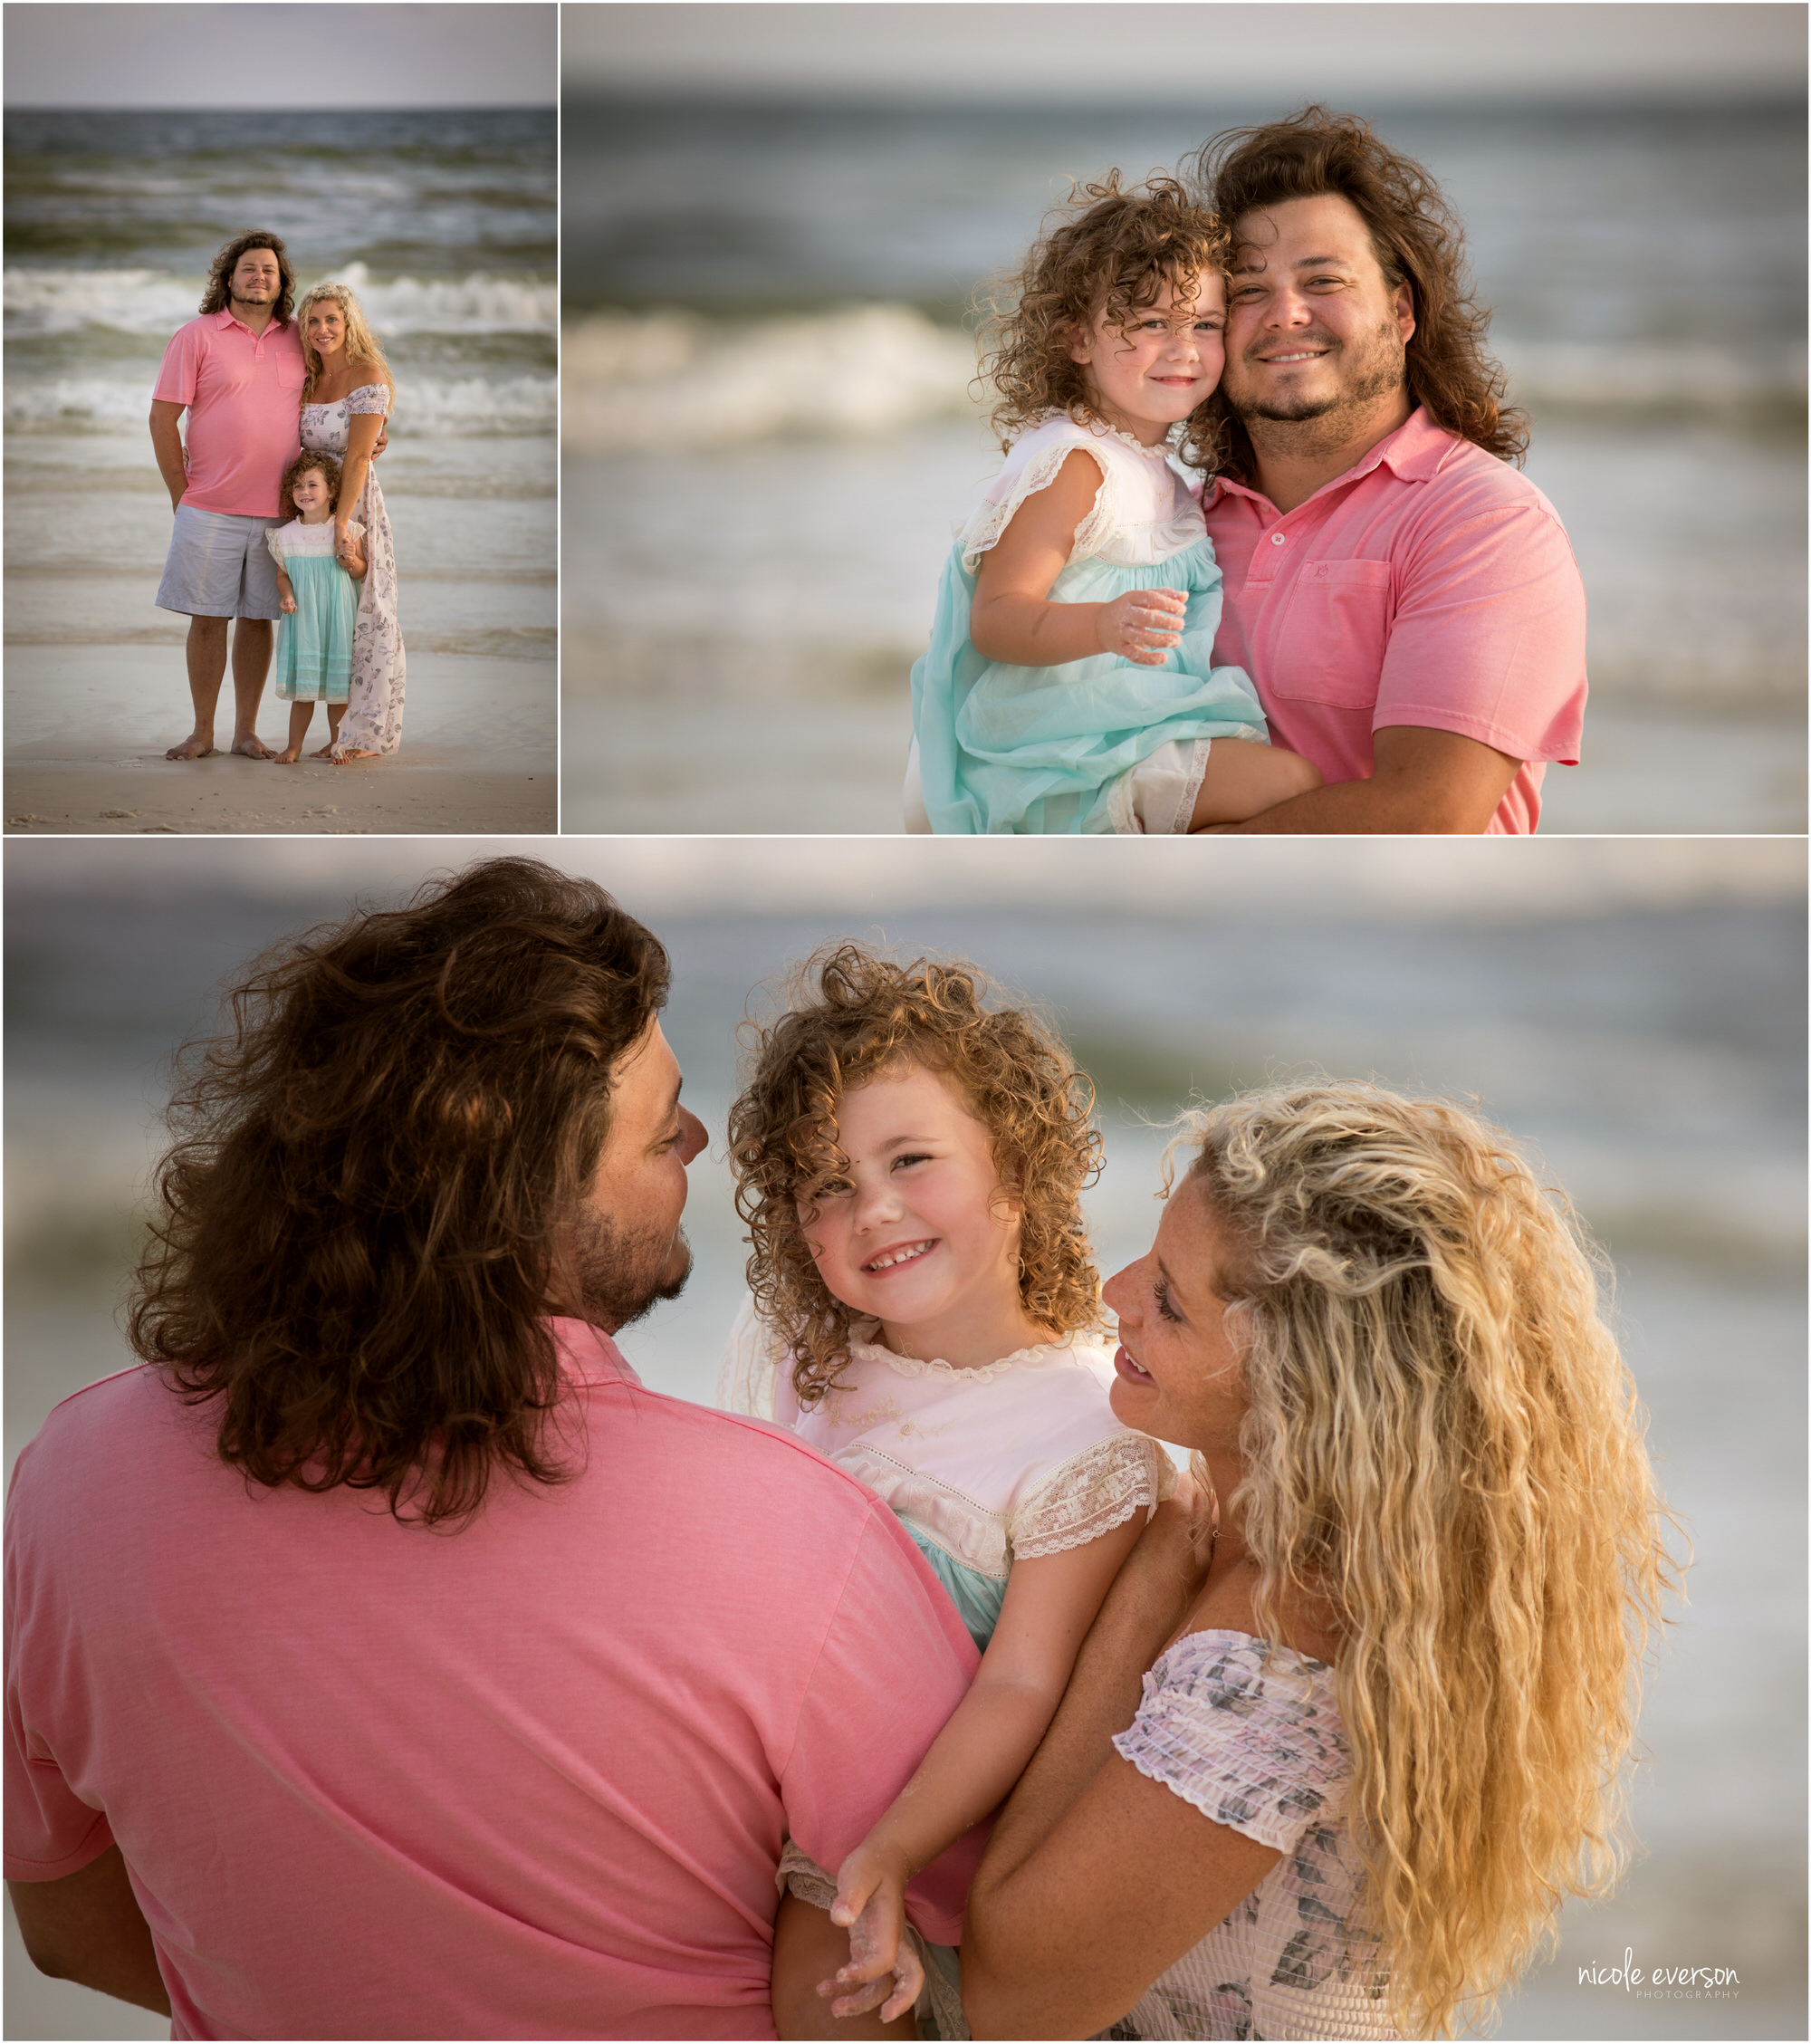 Family of three embracing on Watercolor Inn Beach. Photograph taken by Nicole Everson Photography.